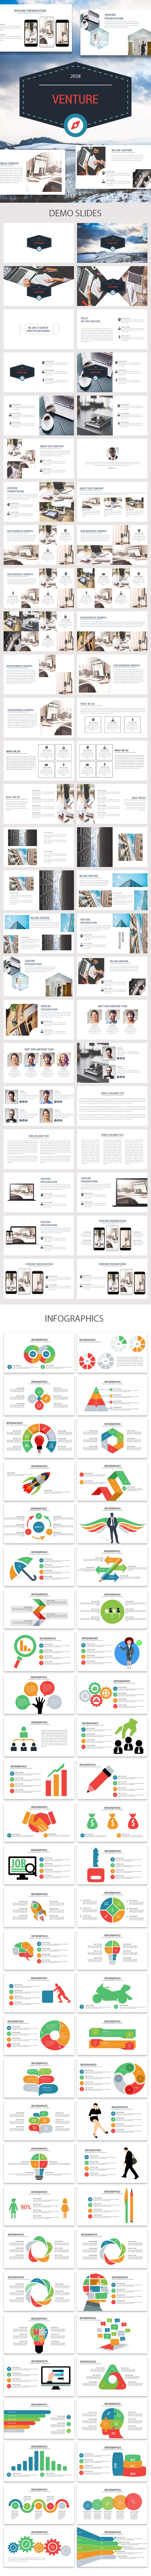 Venture - Multipurpose Powerpoint Presentation - Business PowerPoint Templates